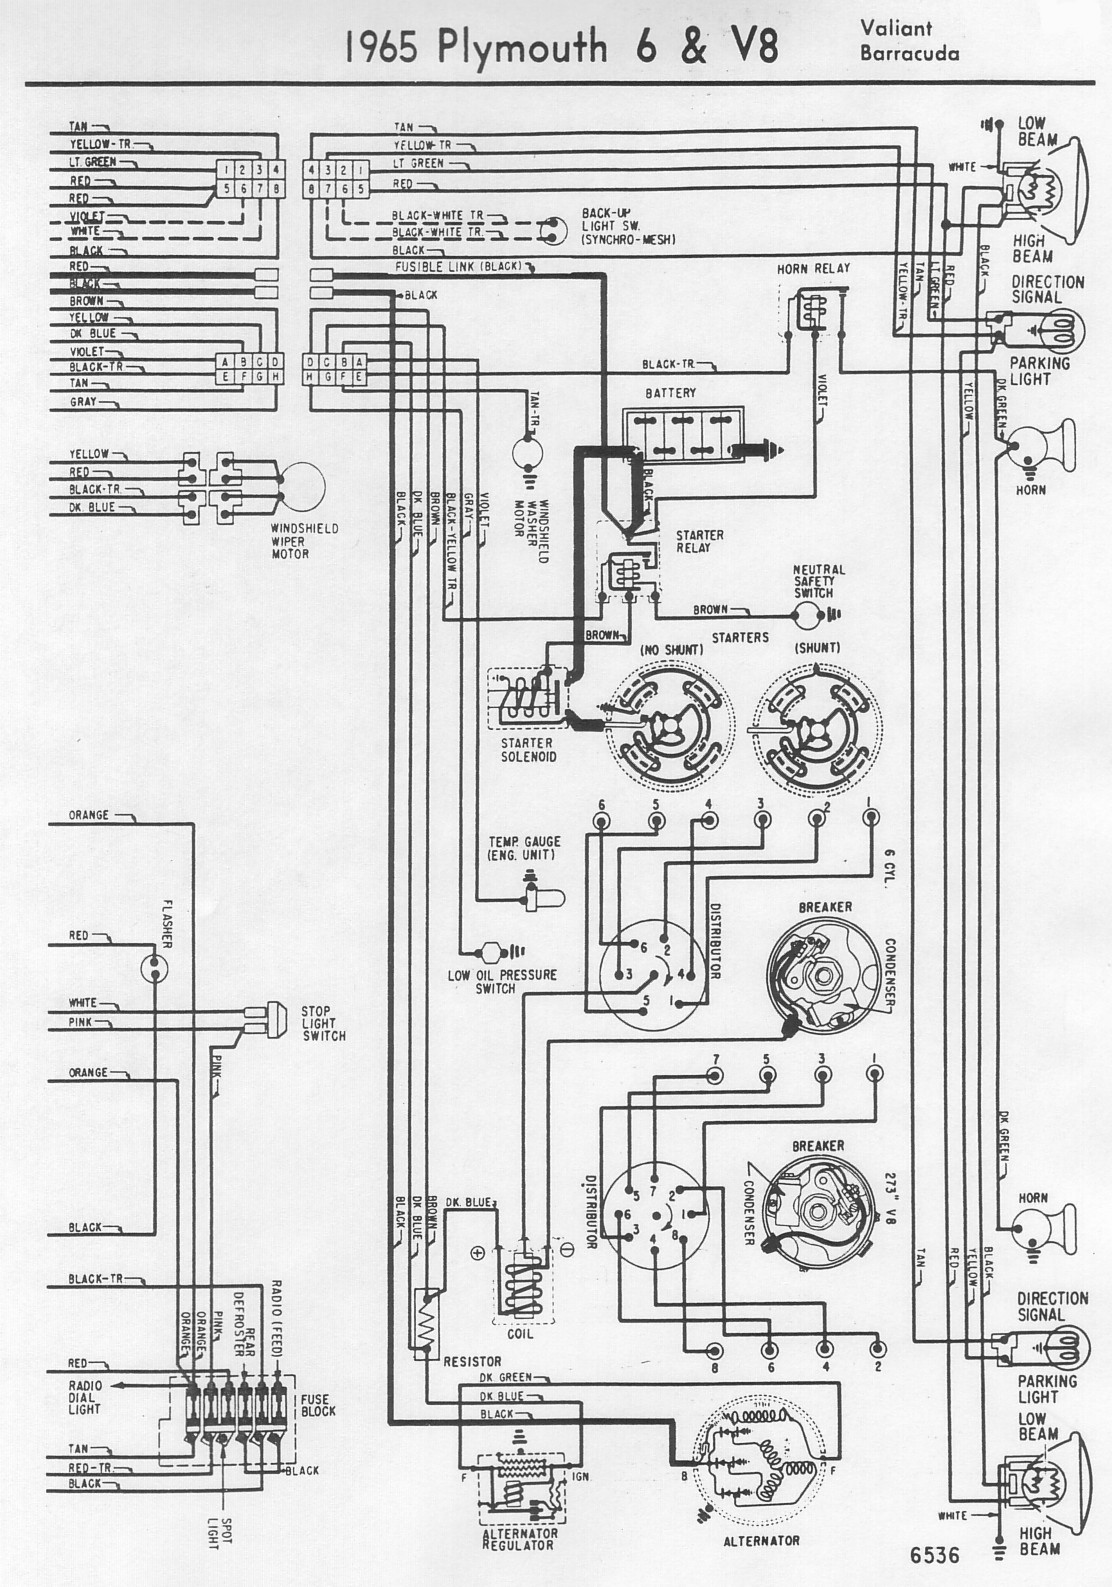 fuel gauge wiring diagram plymouth